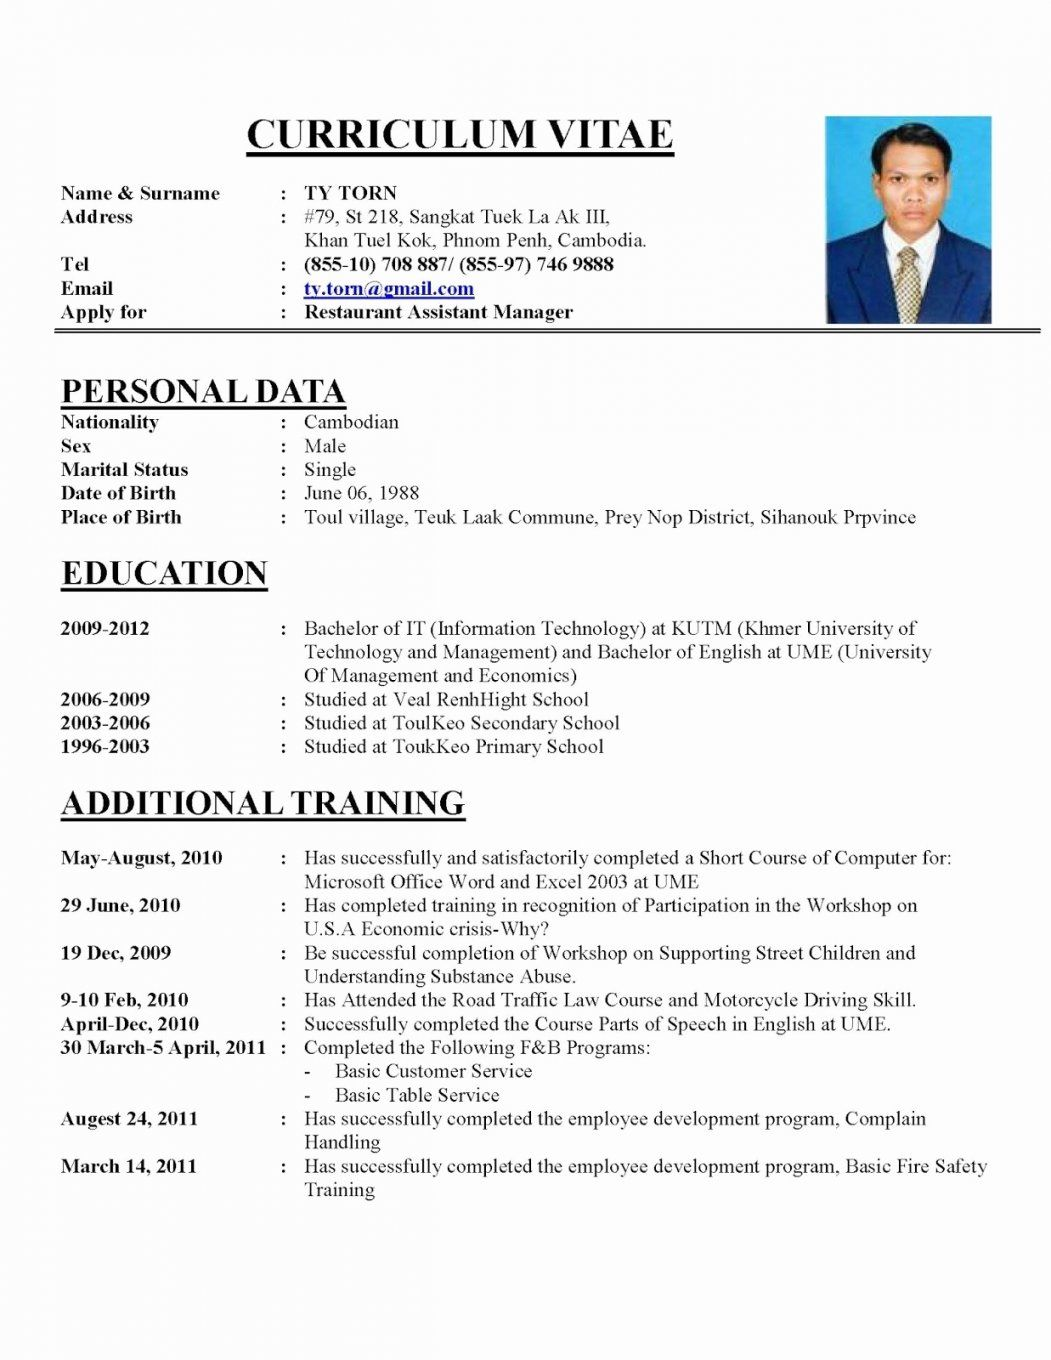 resume format examples job cv sample template example application cio of healthcare fast Resume Example Resume Application